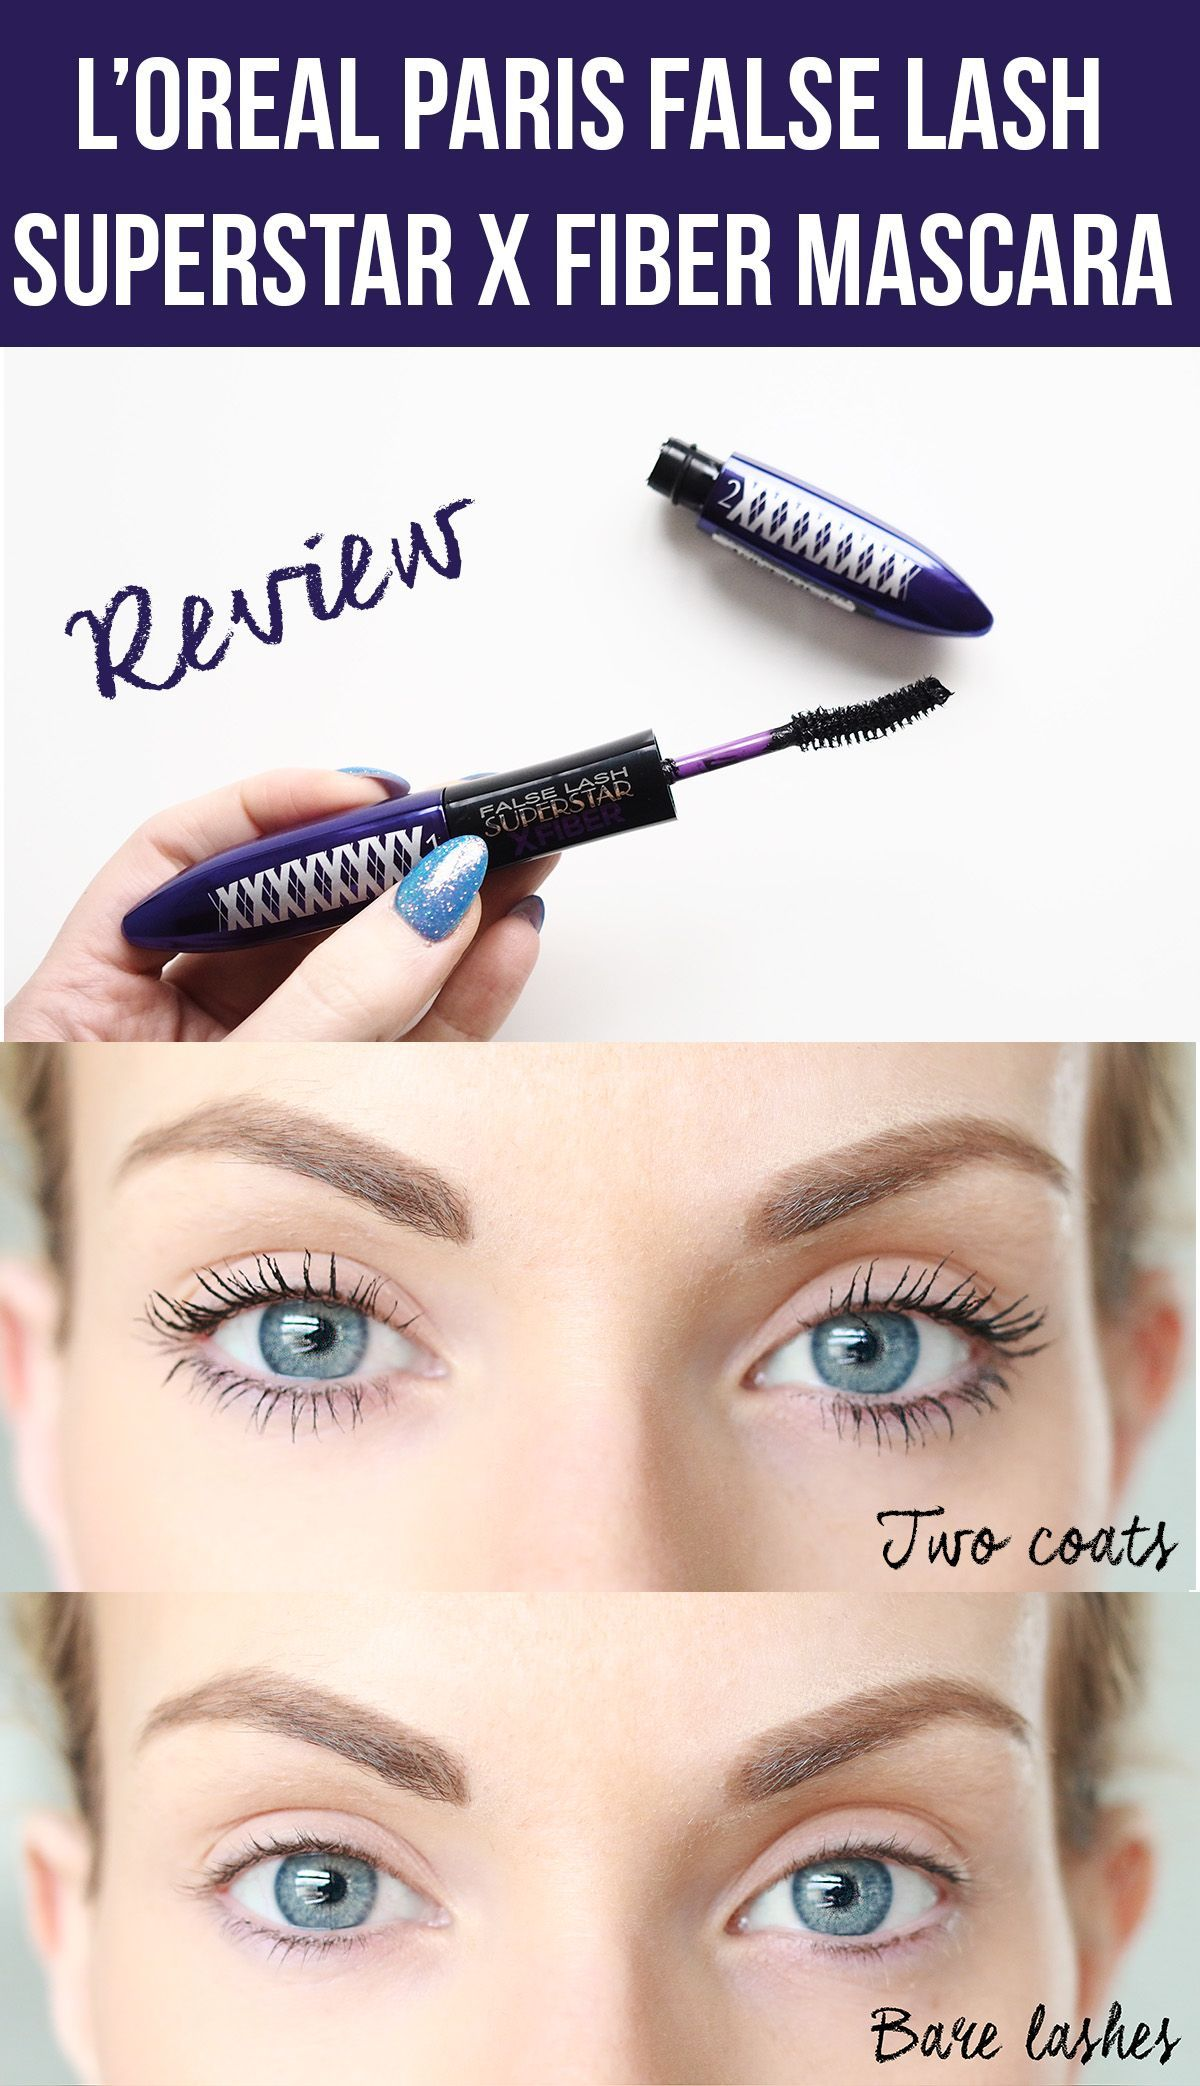 4209d086c77 L'Oreal Paris False Lash Superstar X Fiber Mascara Review Plus Before And  After Photos #ClumpyMascara